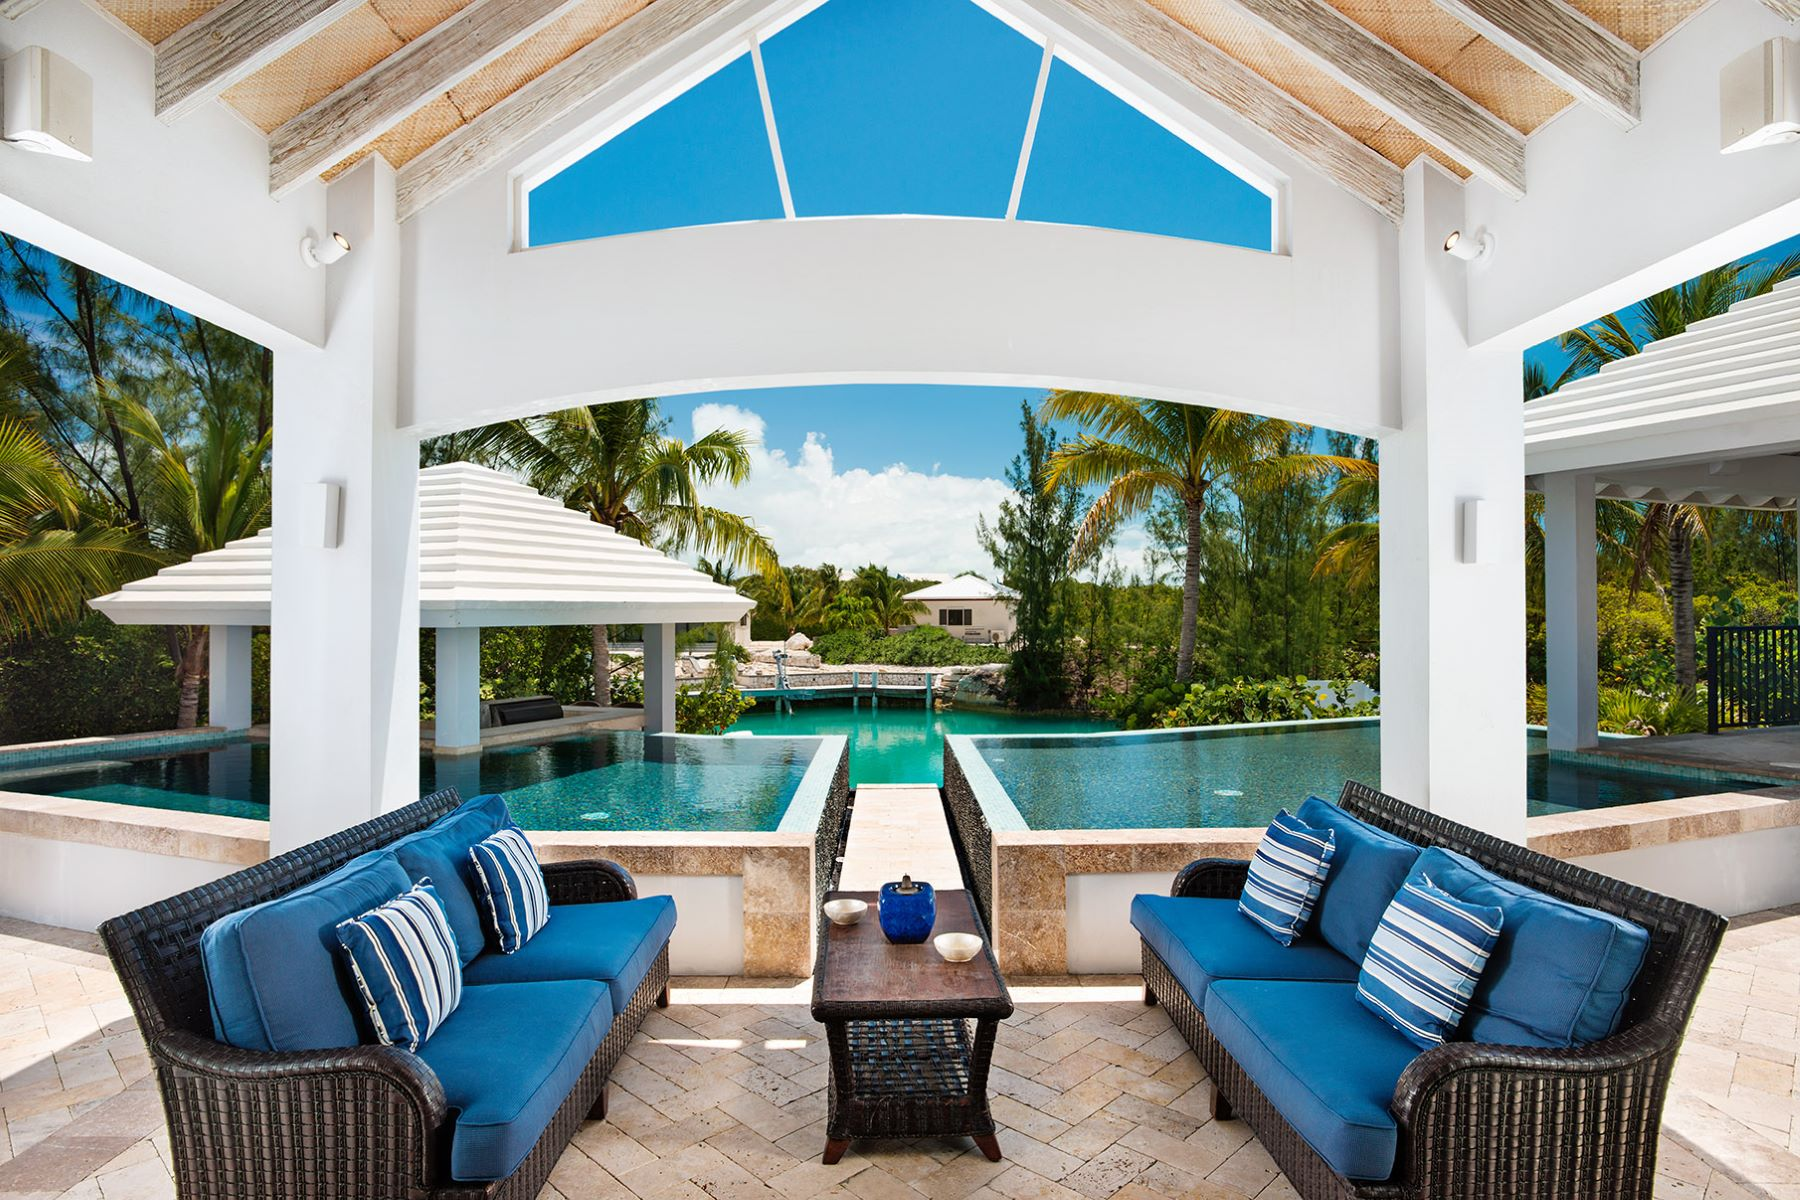 Single Family Home for Sale at Canalfront Home Governor's Road Leeward, Providenciales, Turks And Caicos Islands